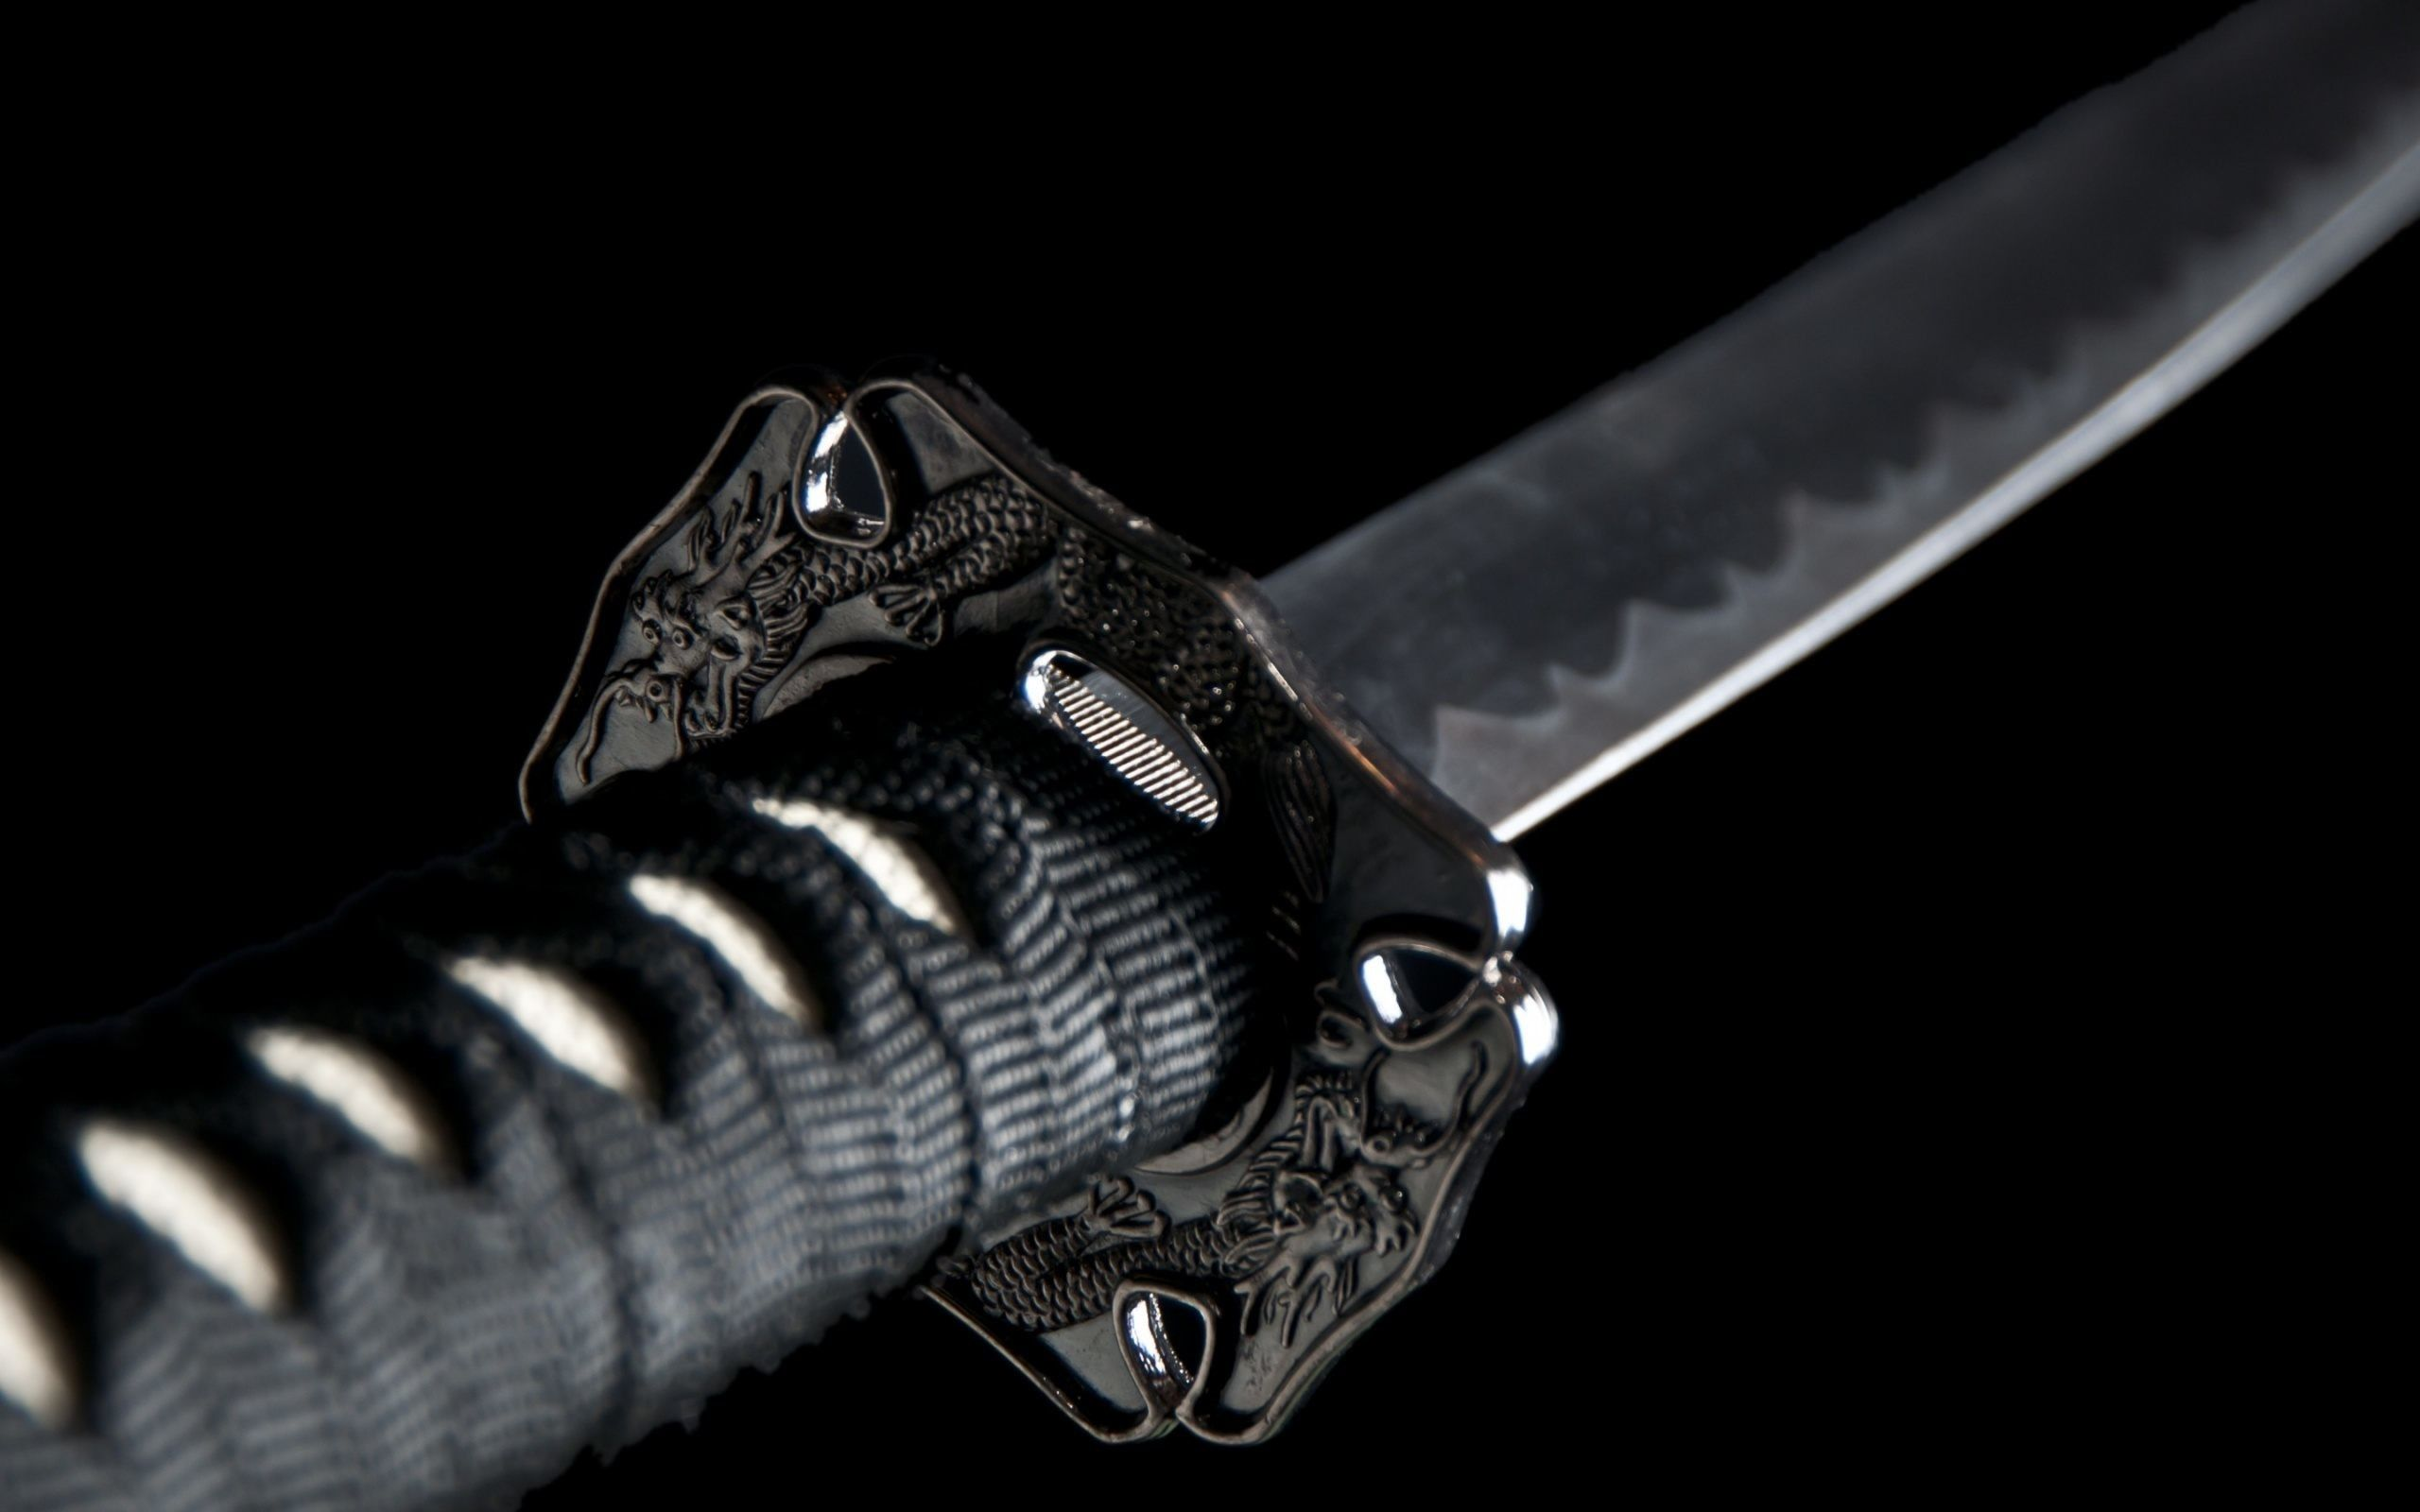 sword photos hd